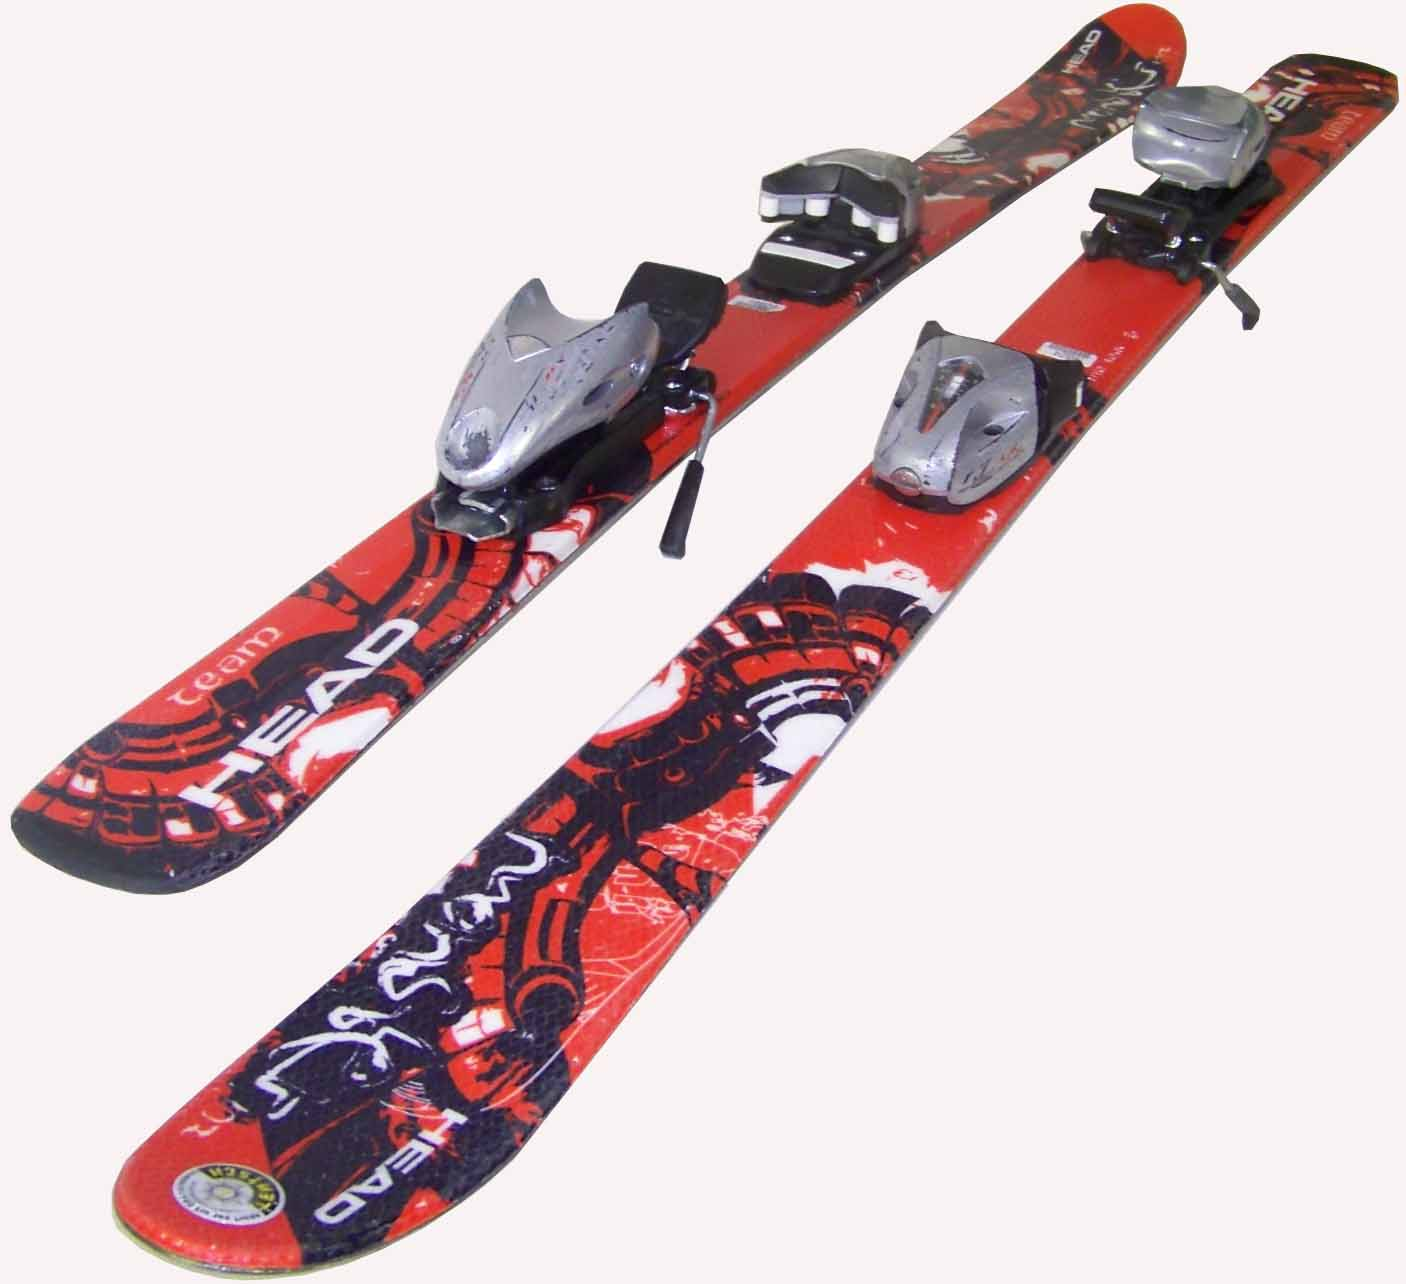 Head monster kinderski cm skiset ski carving